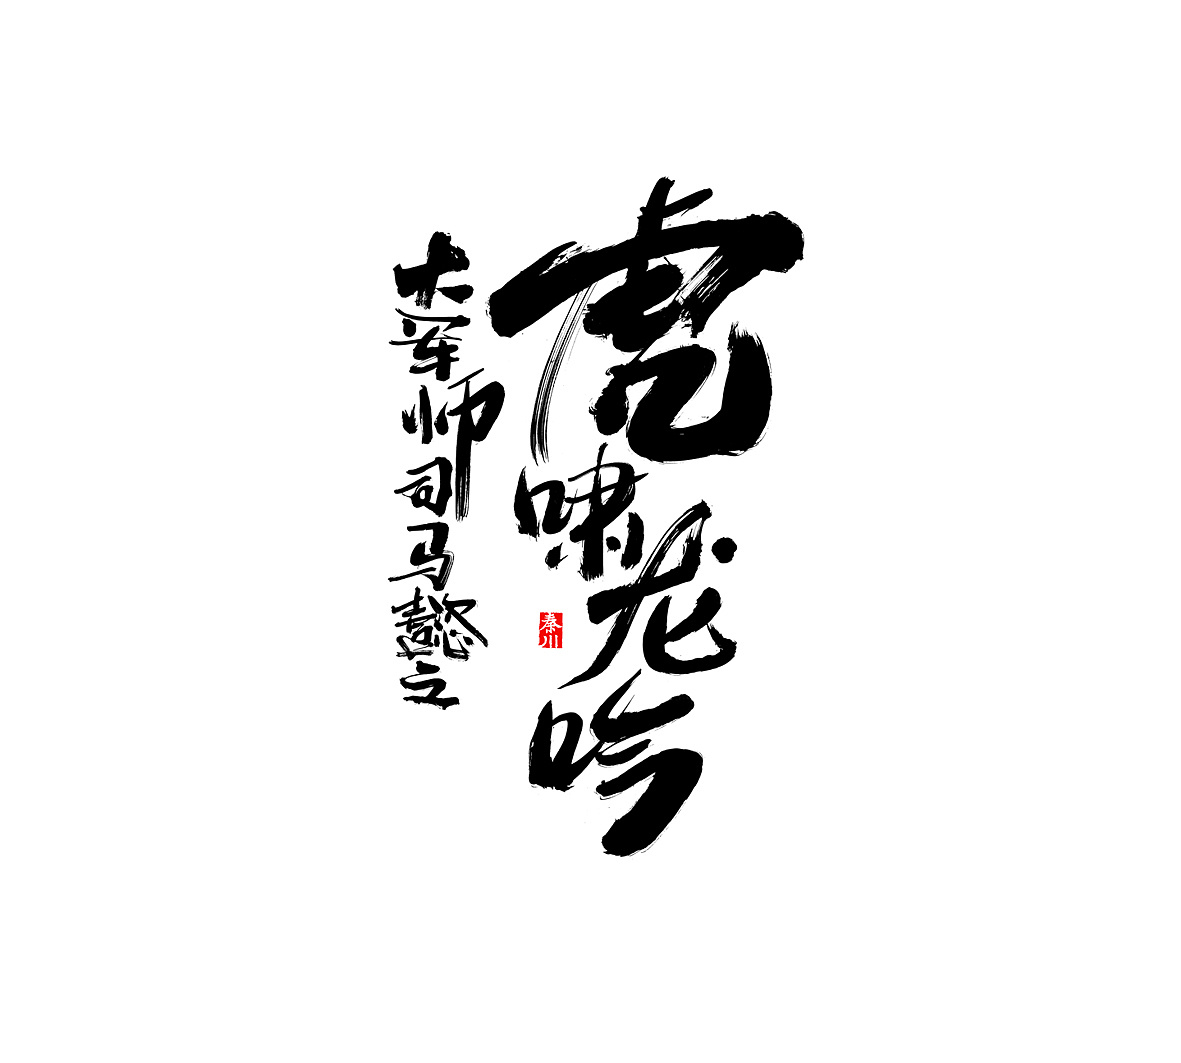 chinesefontdesign.com 2017 11 29 13 29 52 171239 12P Super cool Chinese fonts and movies combined design